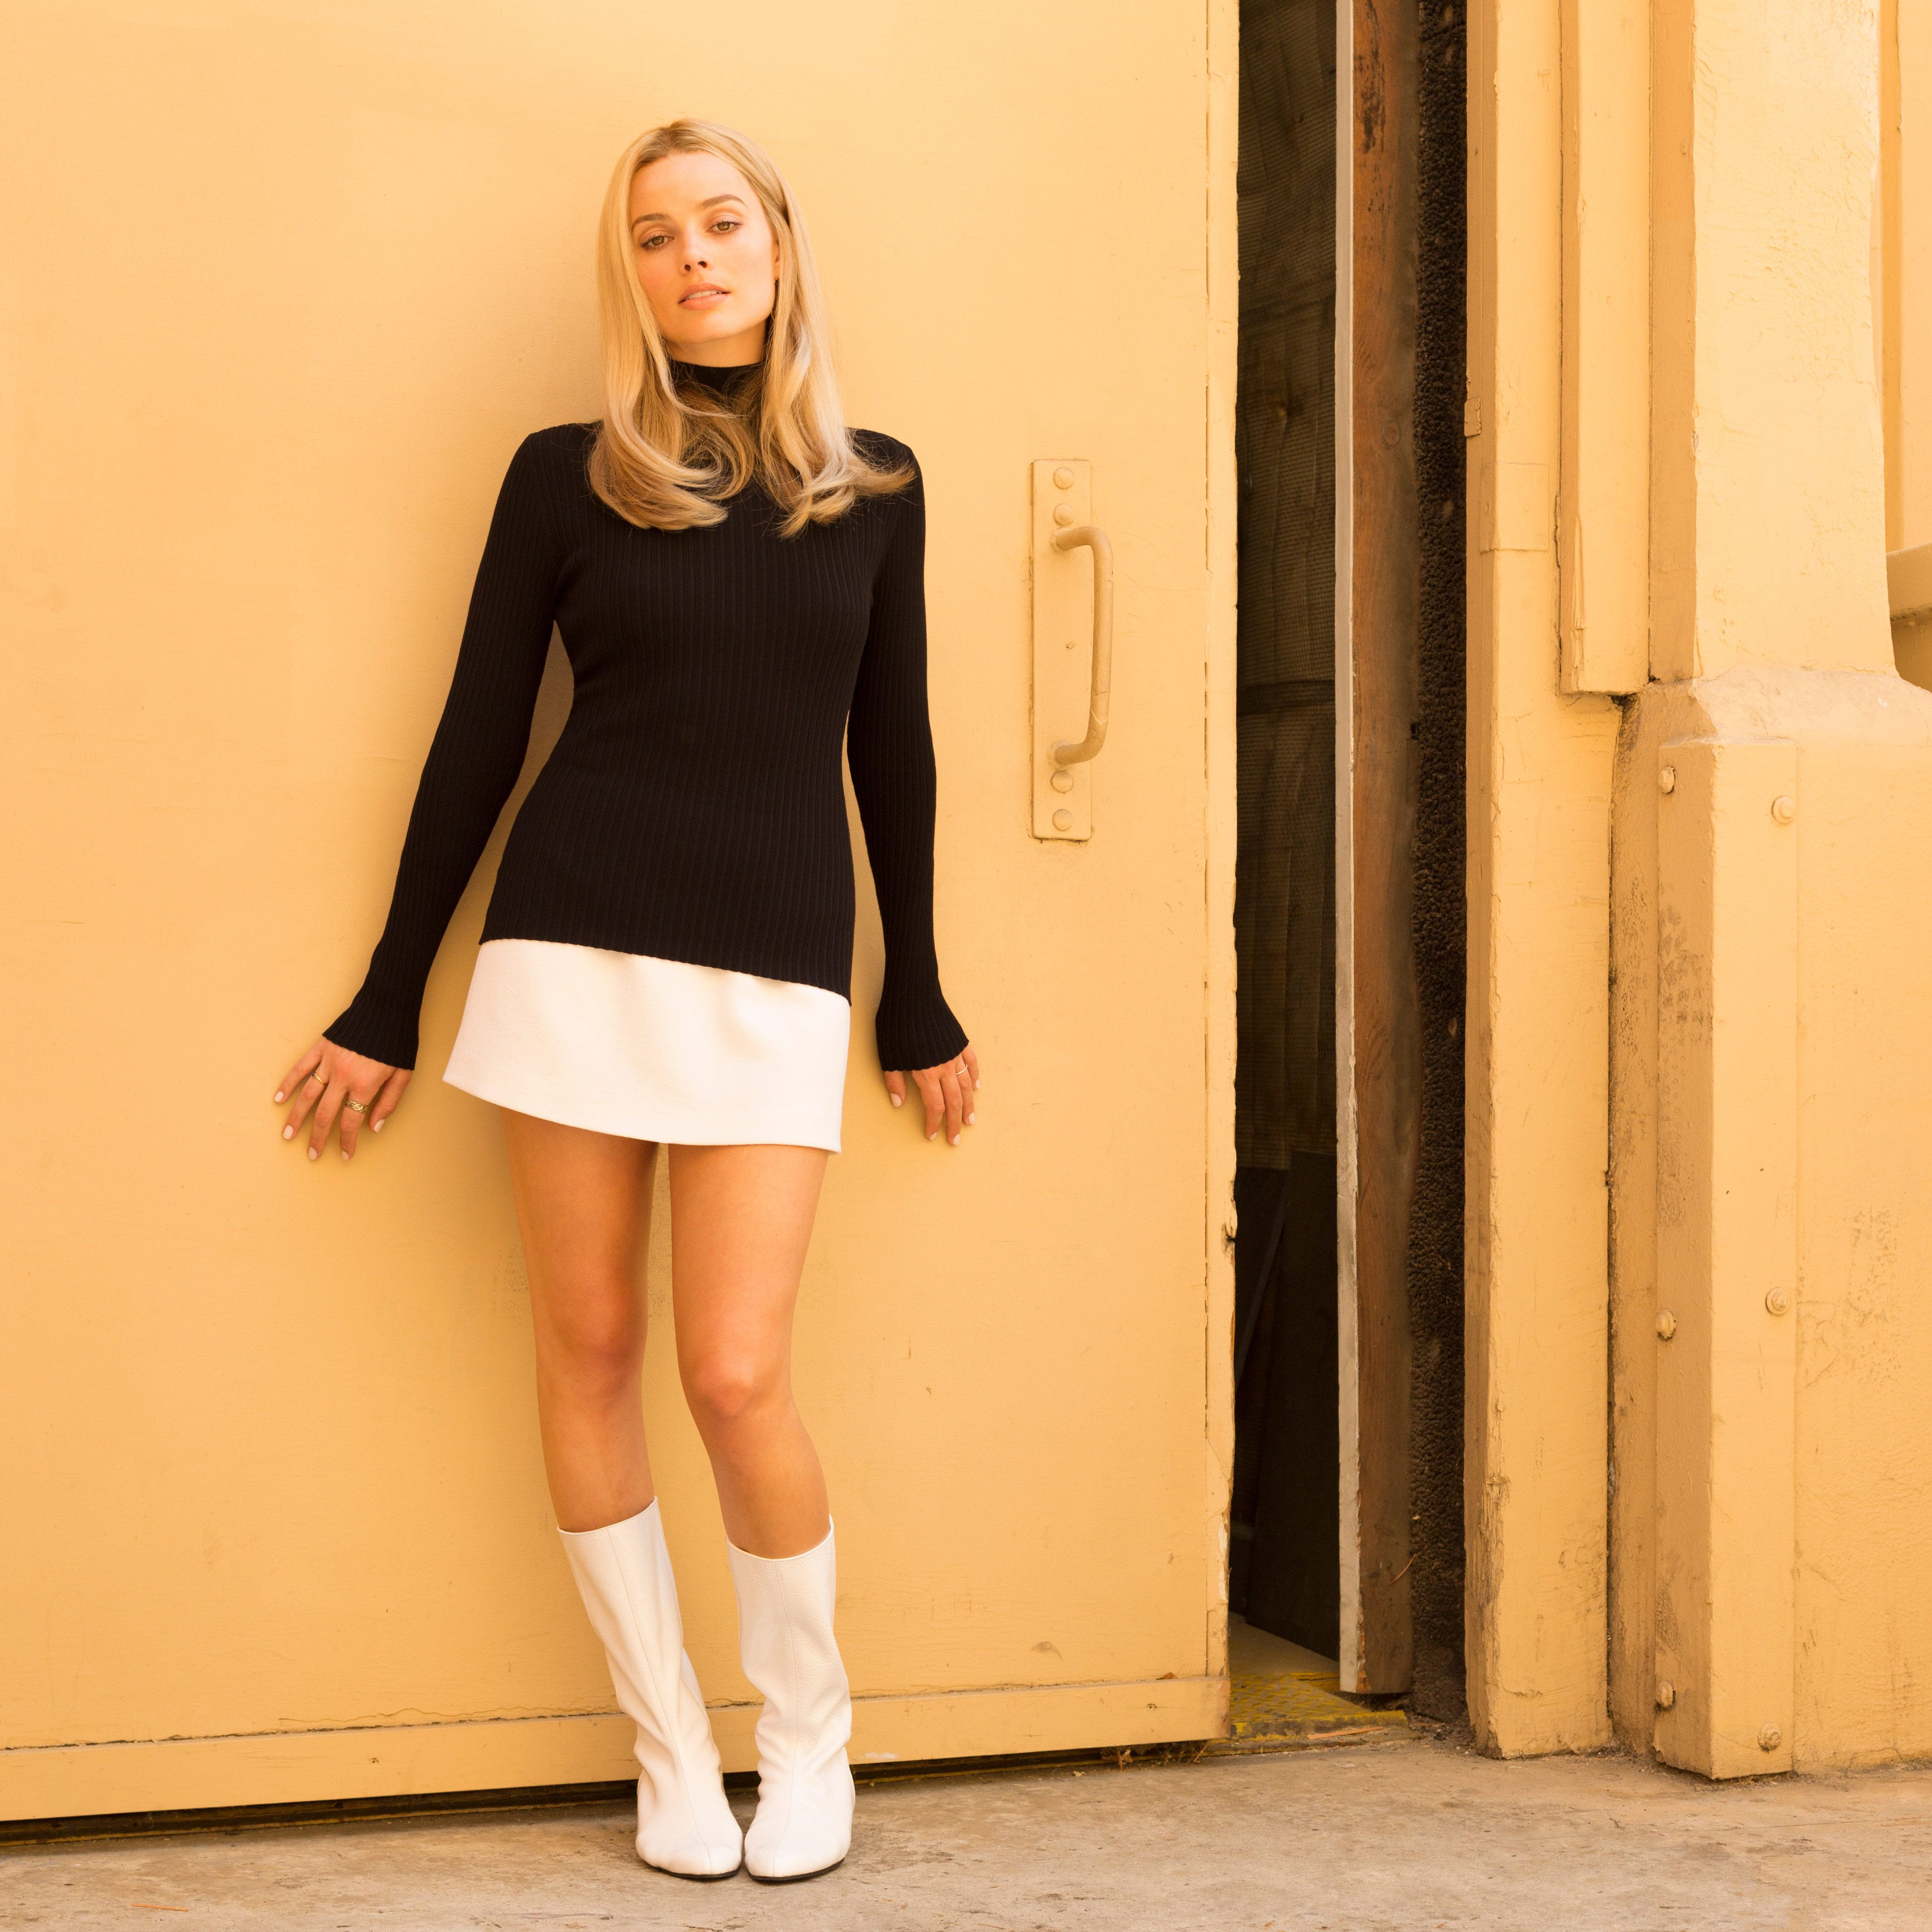 3b24a06cac3 Once Upon a Time in Hollywood trailer, cast, release date, plot and  everything you need to know